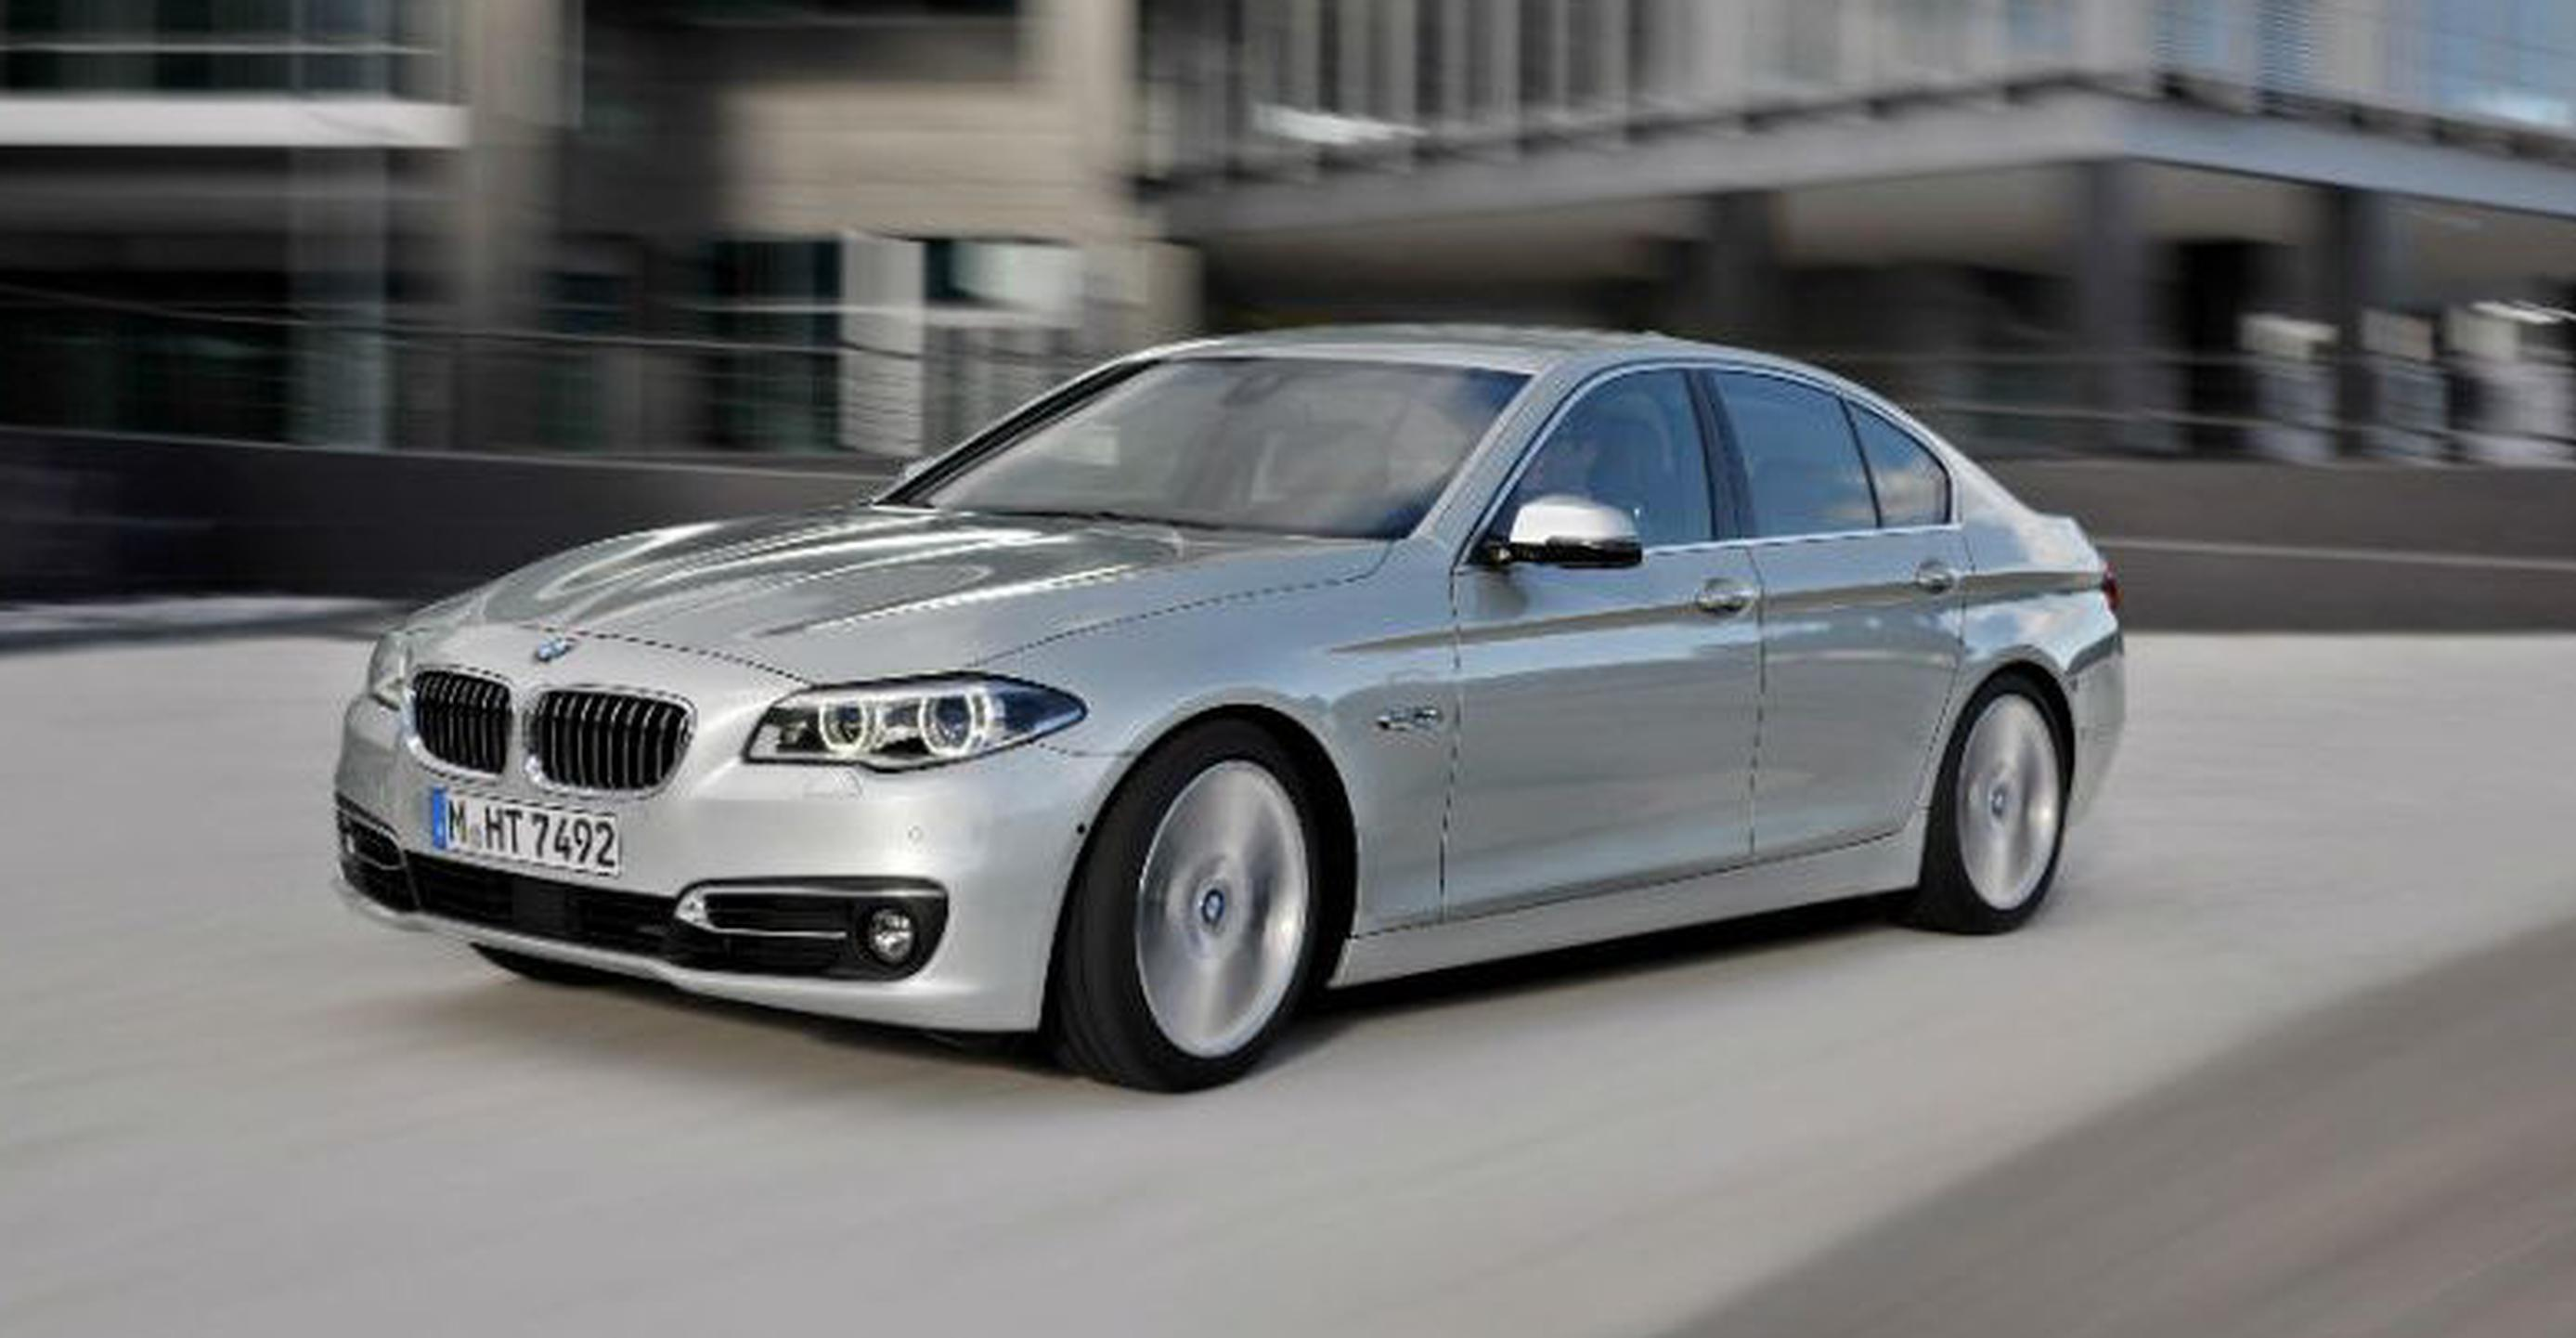 INRIX On-Street Parking offered in BMW 5 series